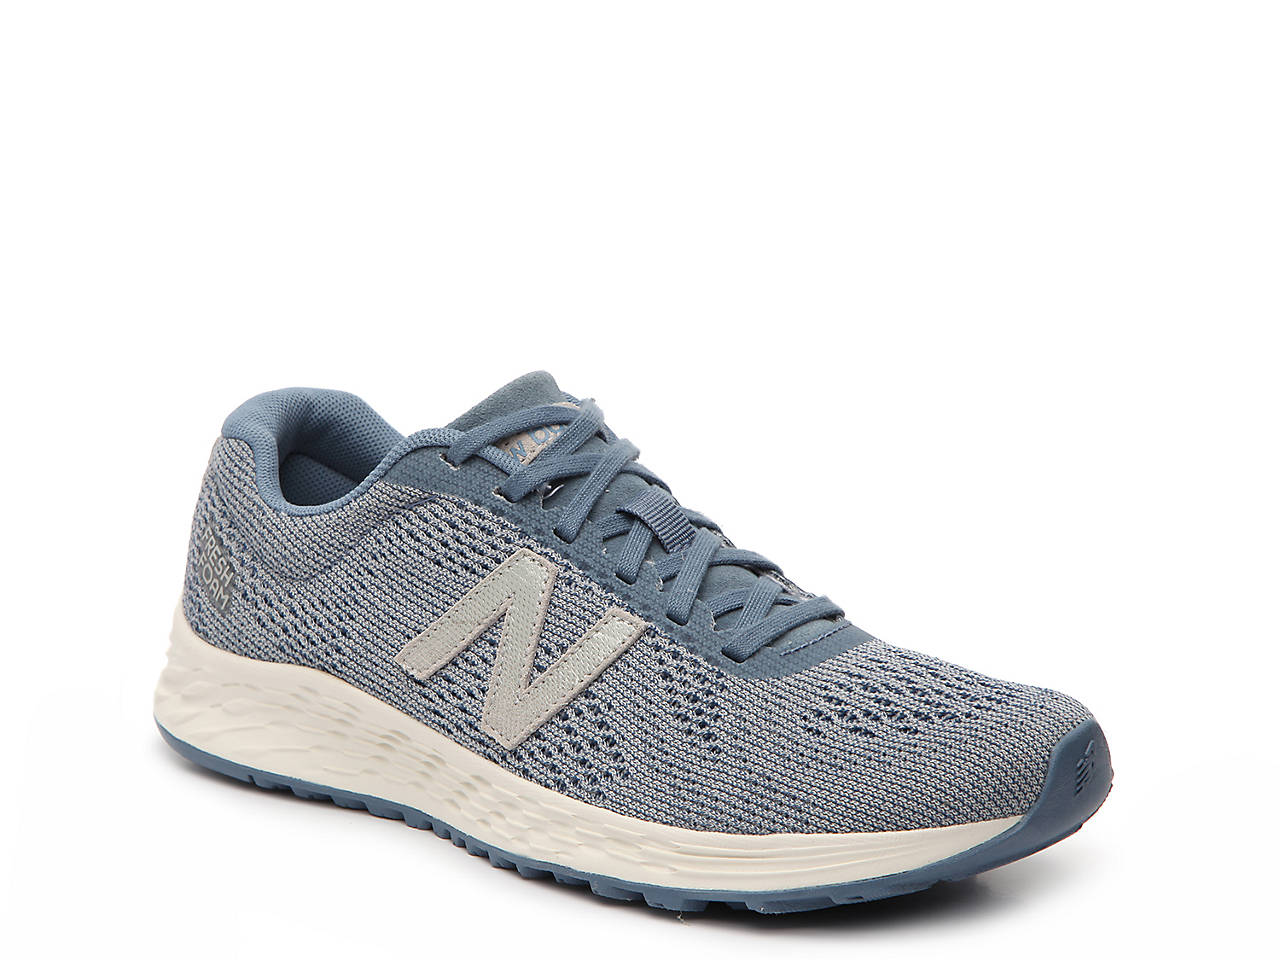 3cb3b1848c8 New Balance Fresh Foam Waris Lightweight Running Shoe - Women s ...